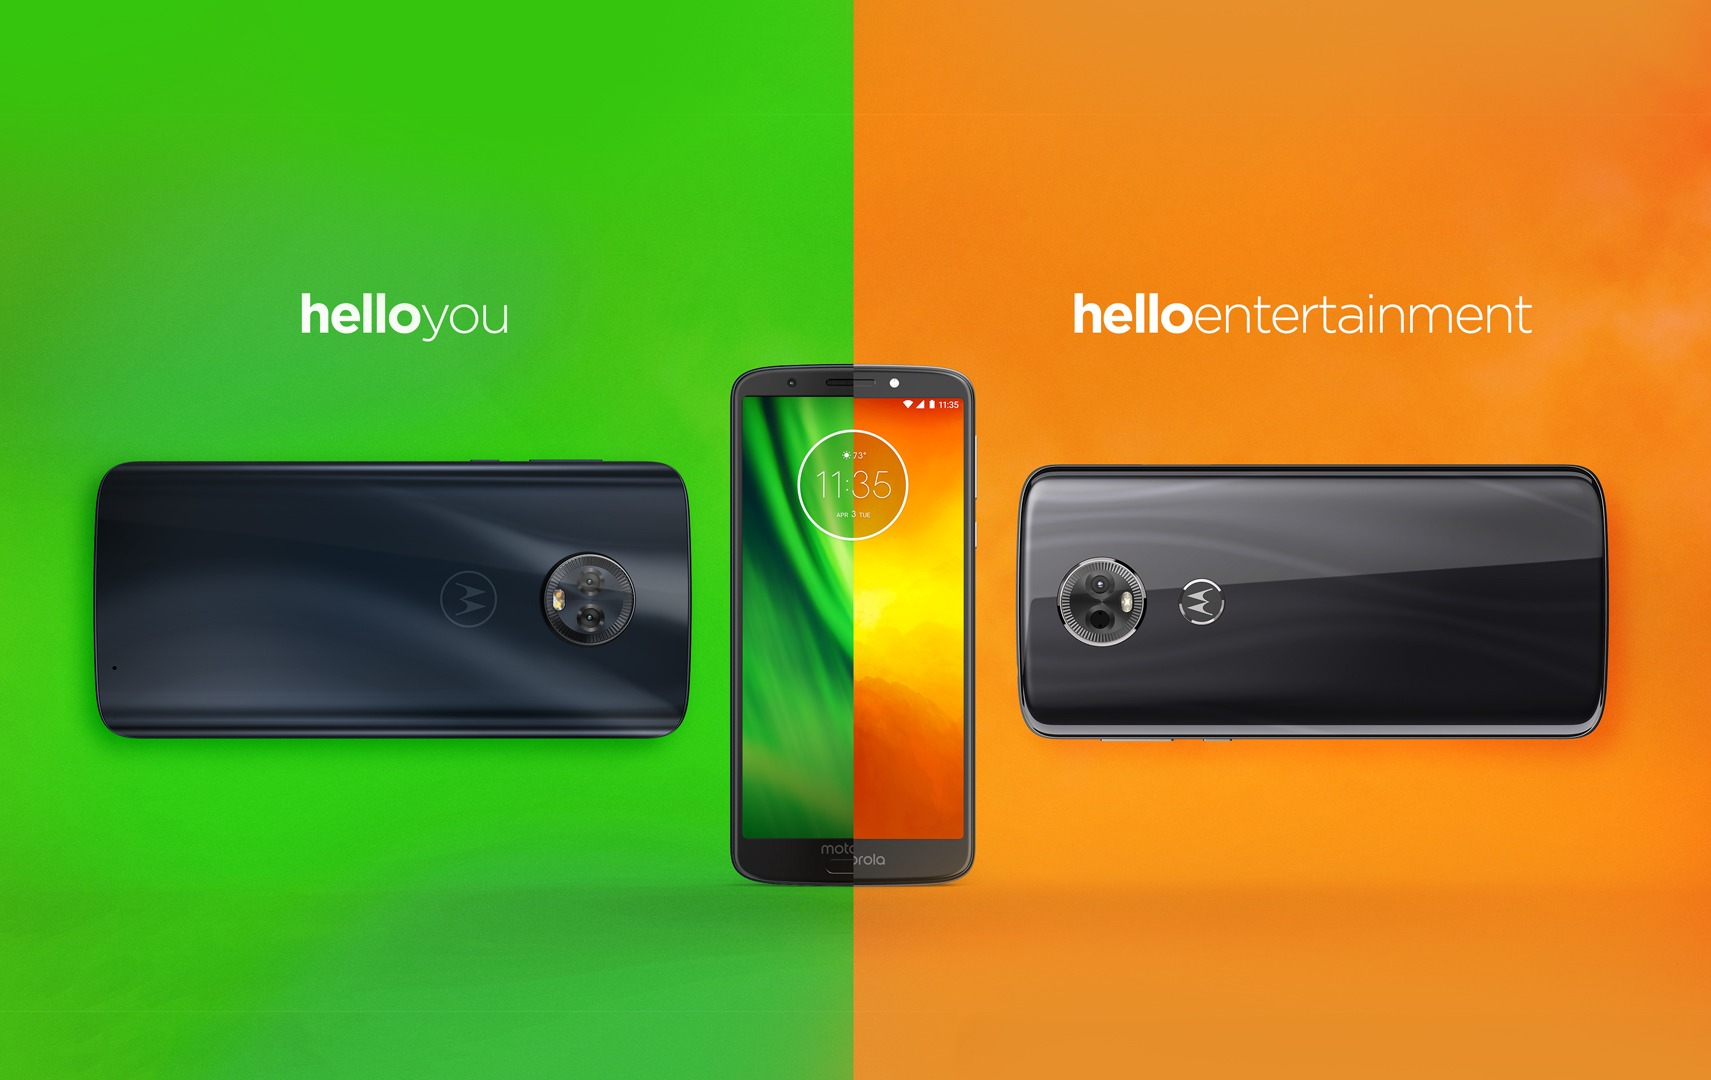 Moto G6, Moto G6 Play & Moto G6 Plus - Here's all you need to know 1